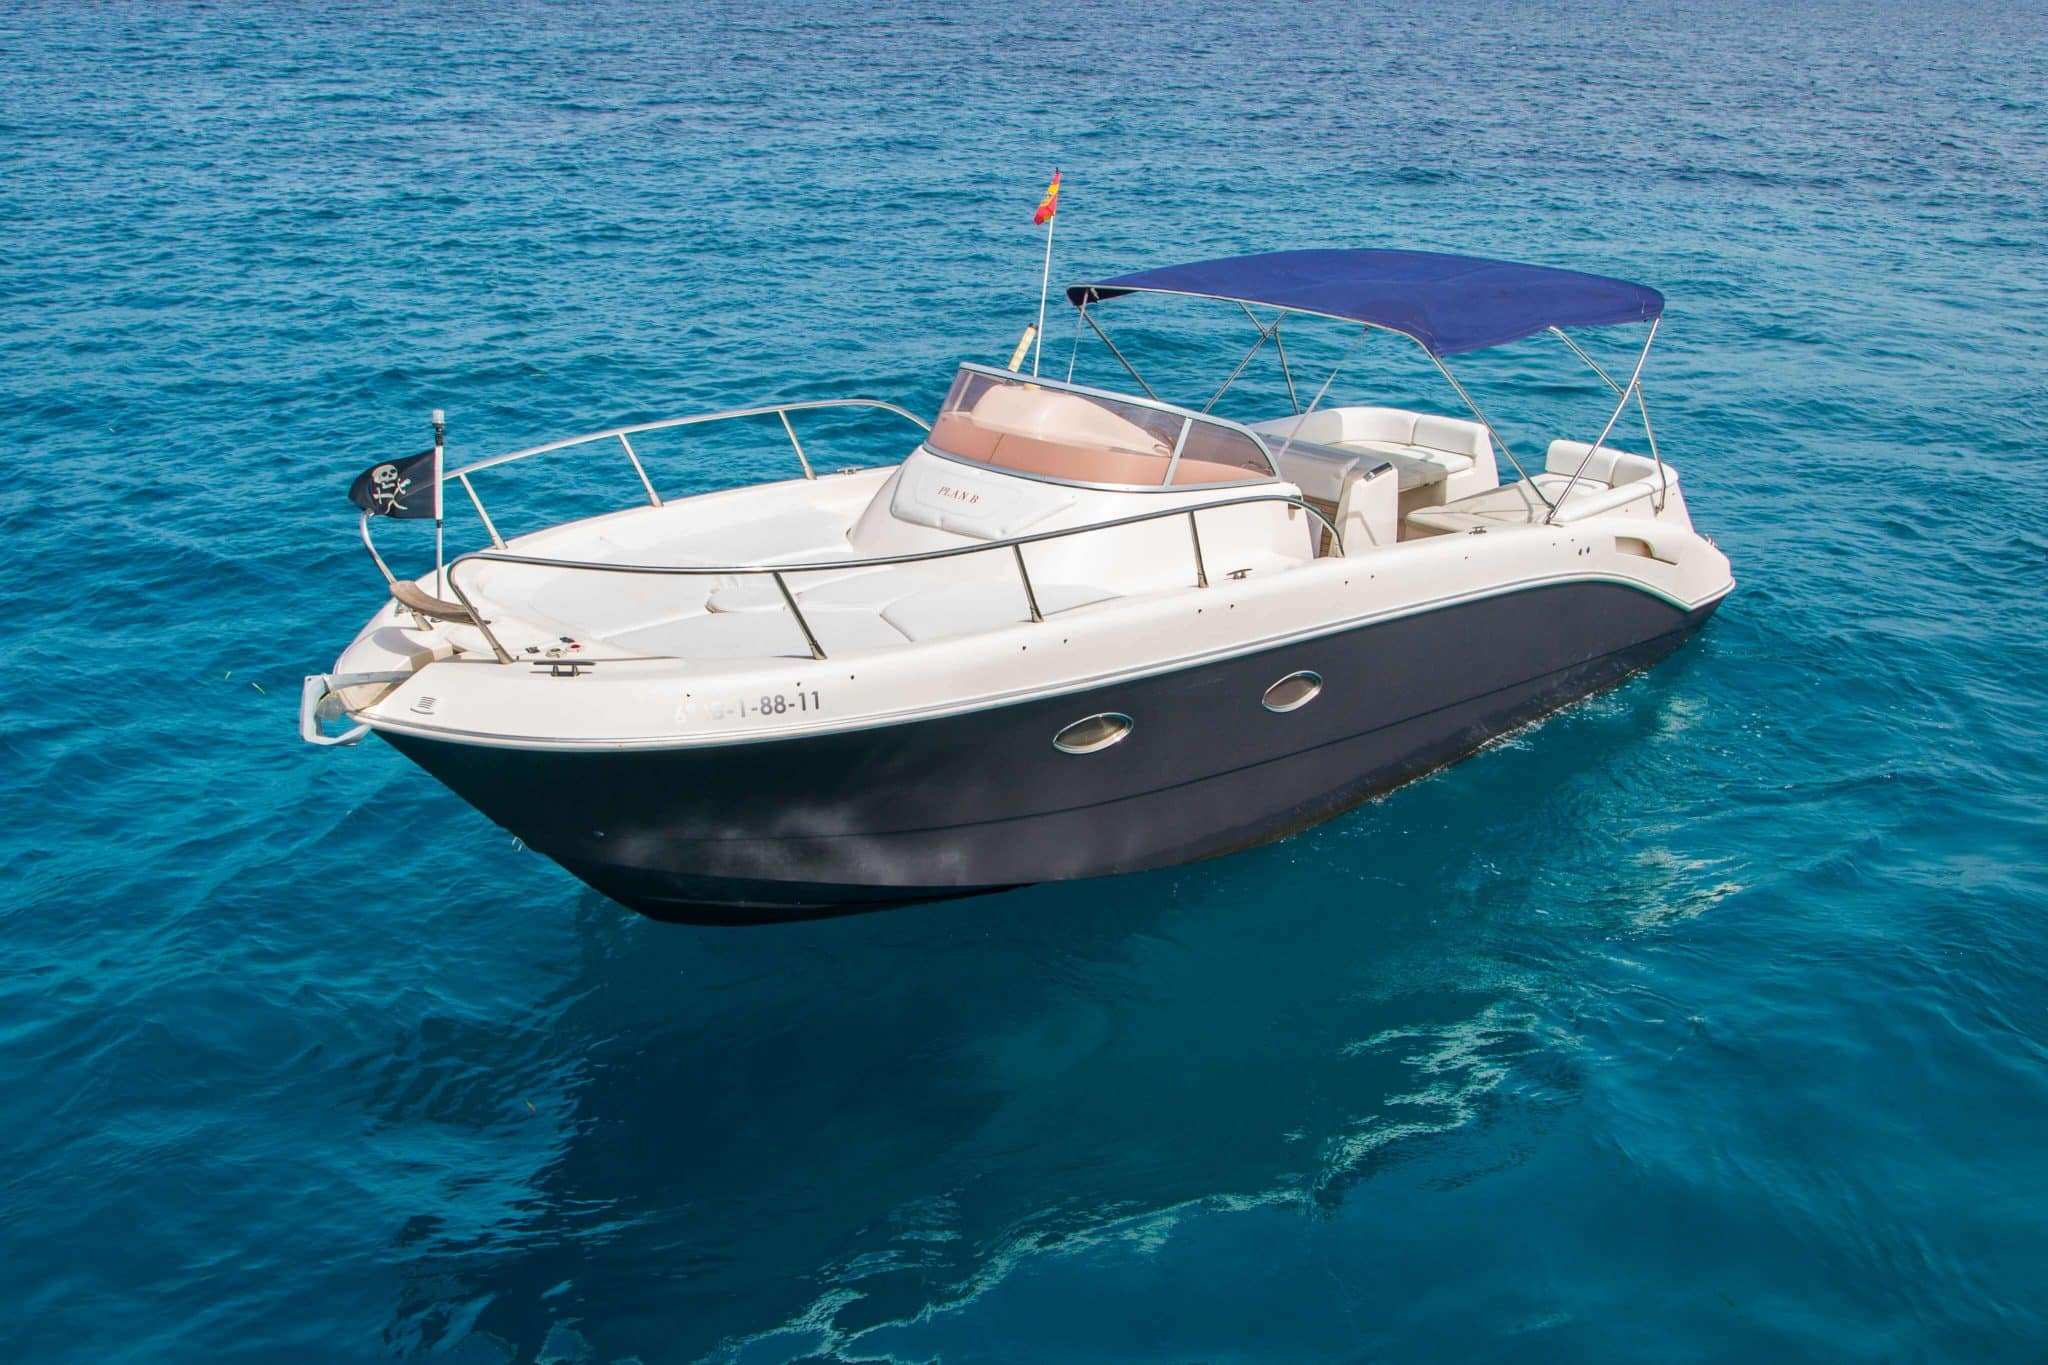 Side view of the Mano Marine 29